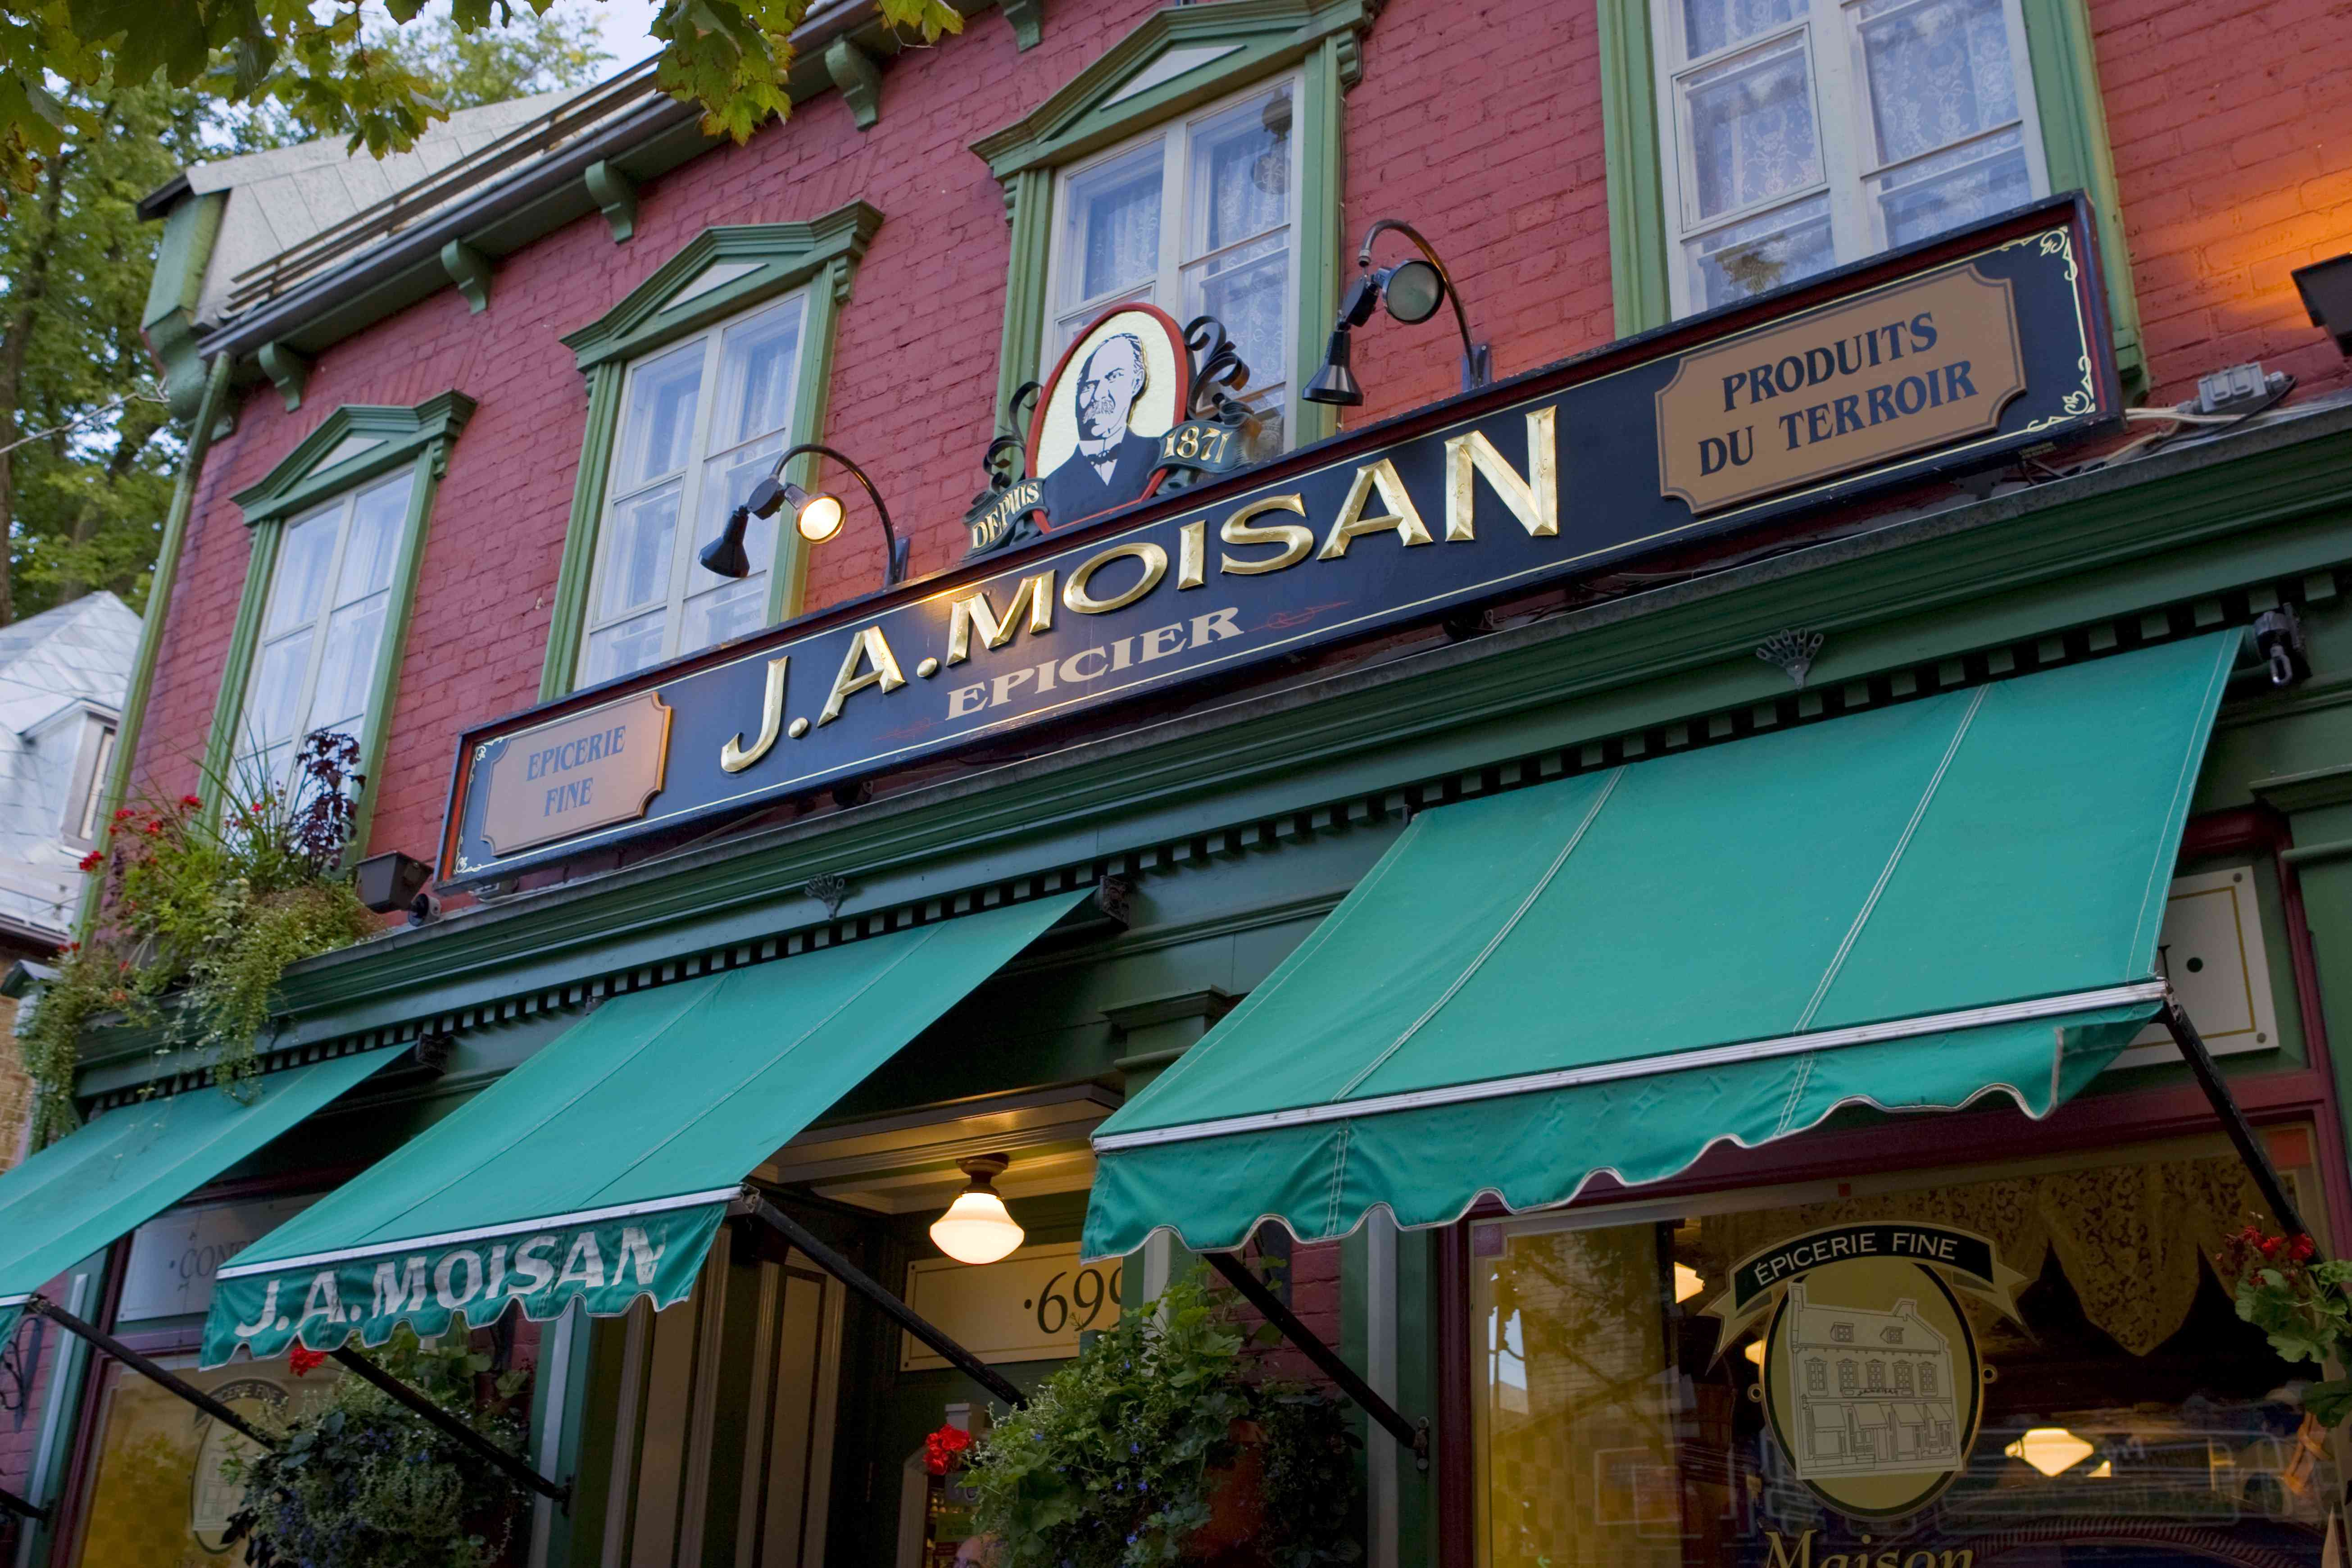 The famous J.A. Moisan grocery store in Quebec City Canada